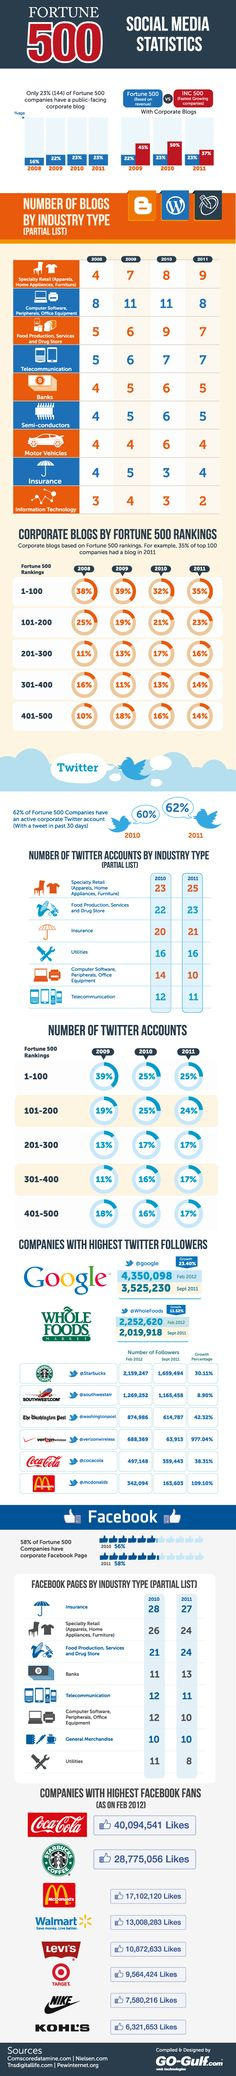 Fortune 500 Social Media Statistics 2013 - an infographic